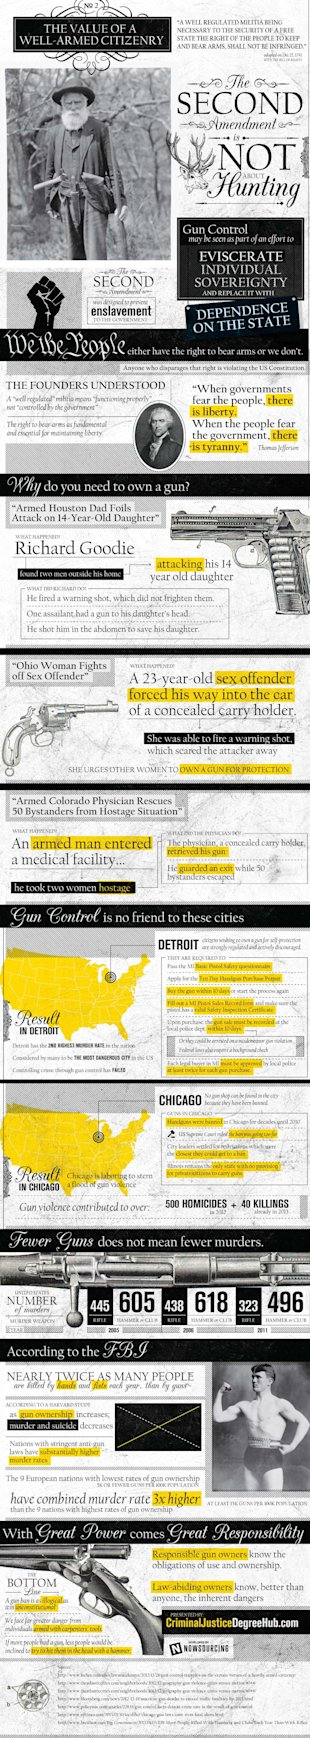 The Value of a Well Armed Citizenry [Infographic] image gun control2